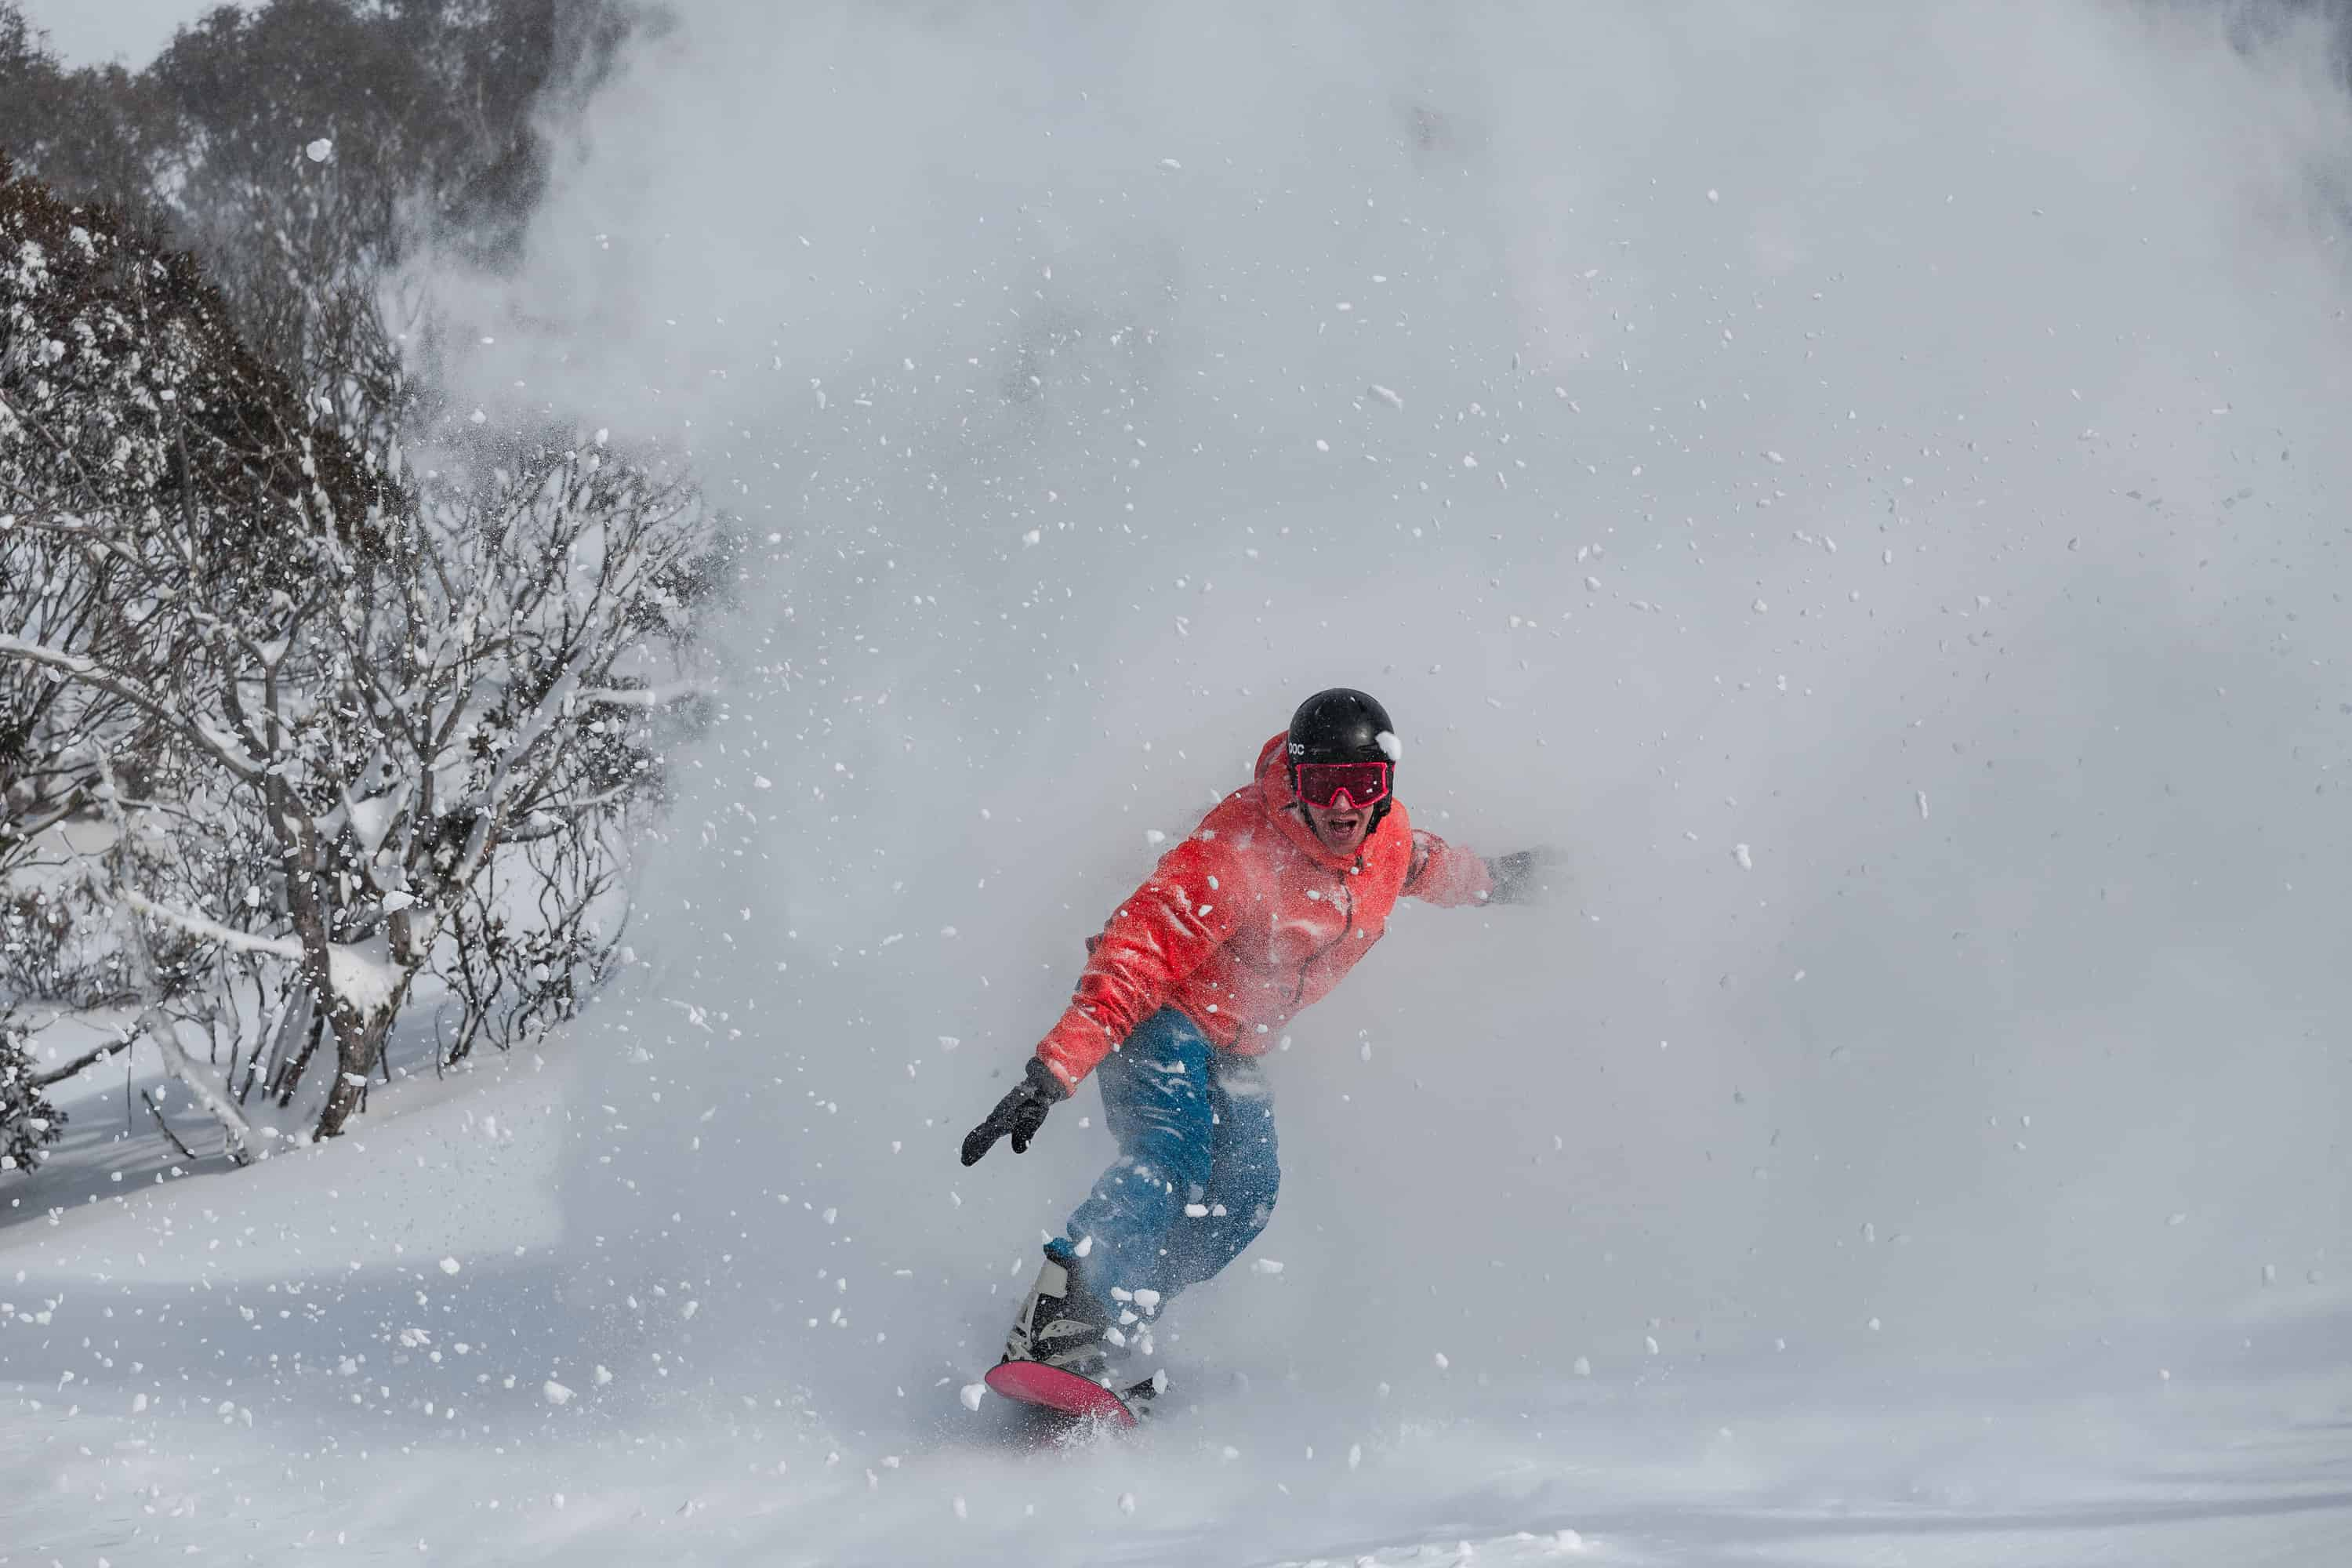 Storm Journal, August 7-12 - Snow Totals Up to 140cms Set Up Second Hald Of The Season